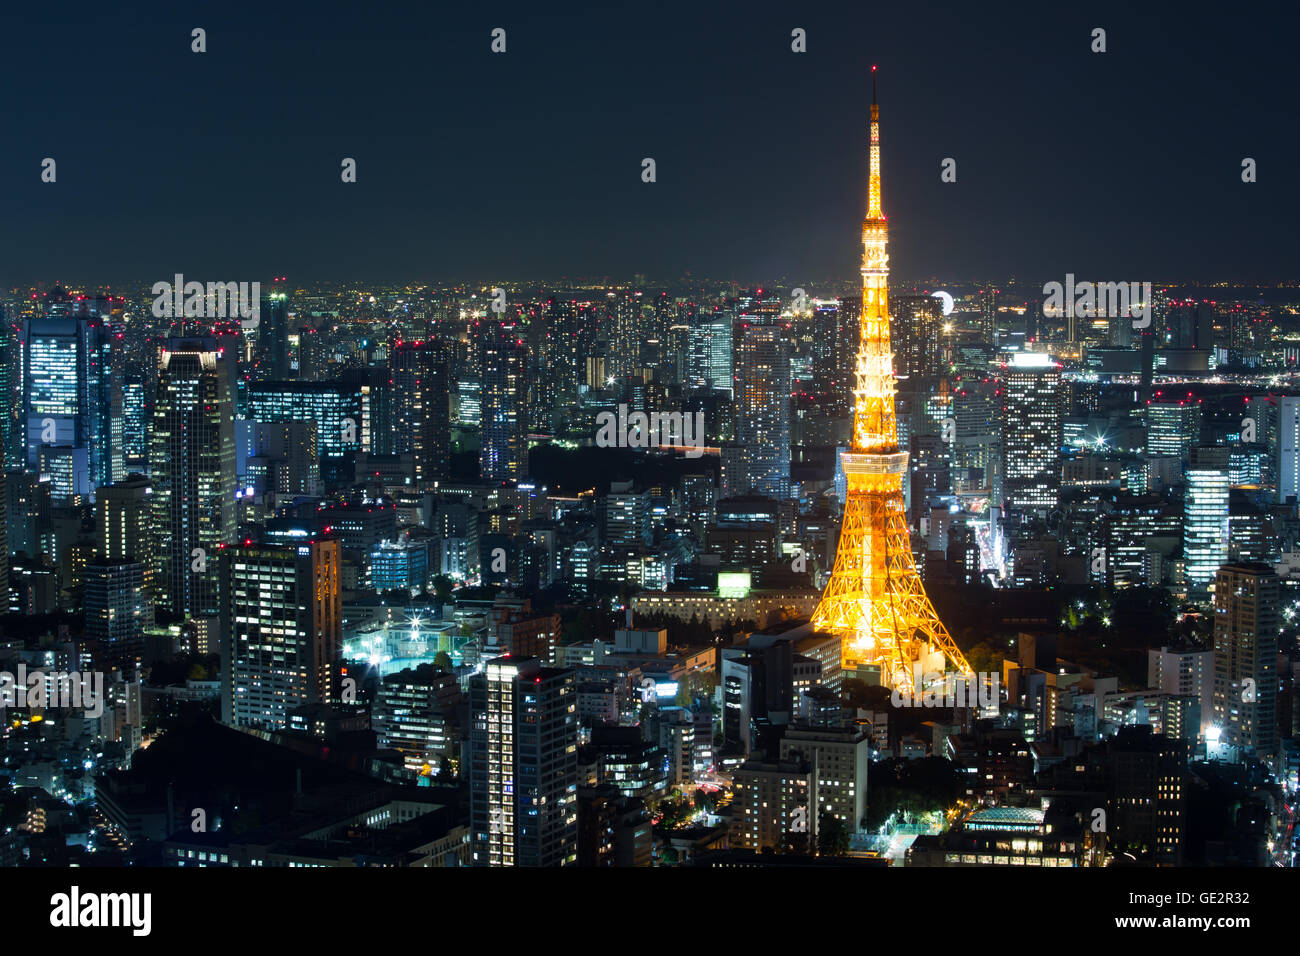 Top View Of Tokyo Cityscape At Night Time, Japan Stock